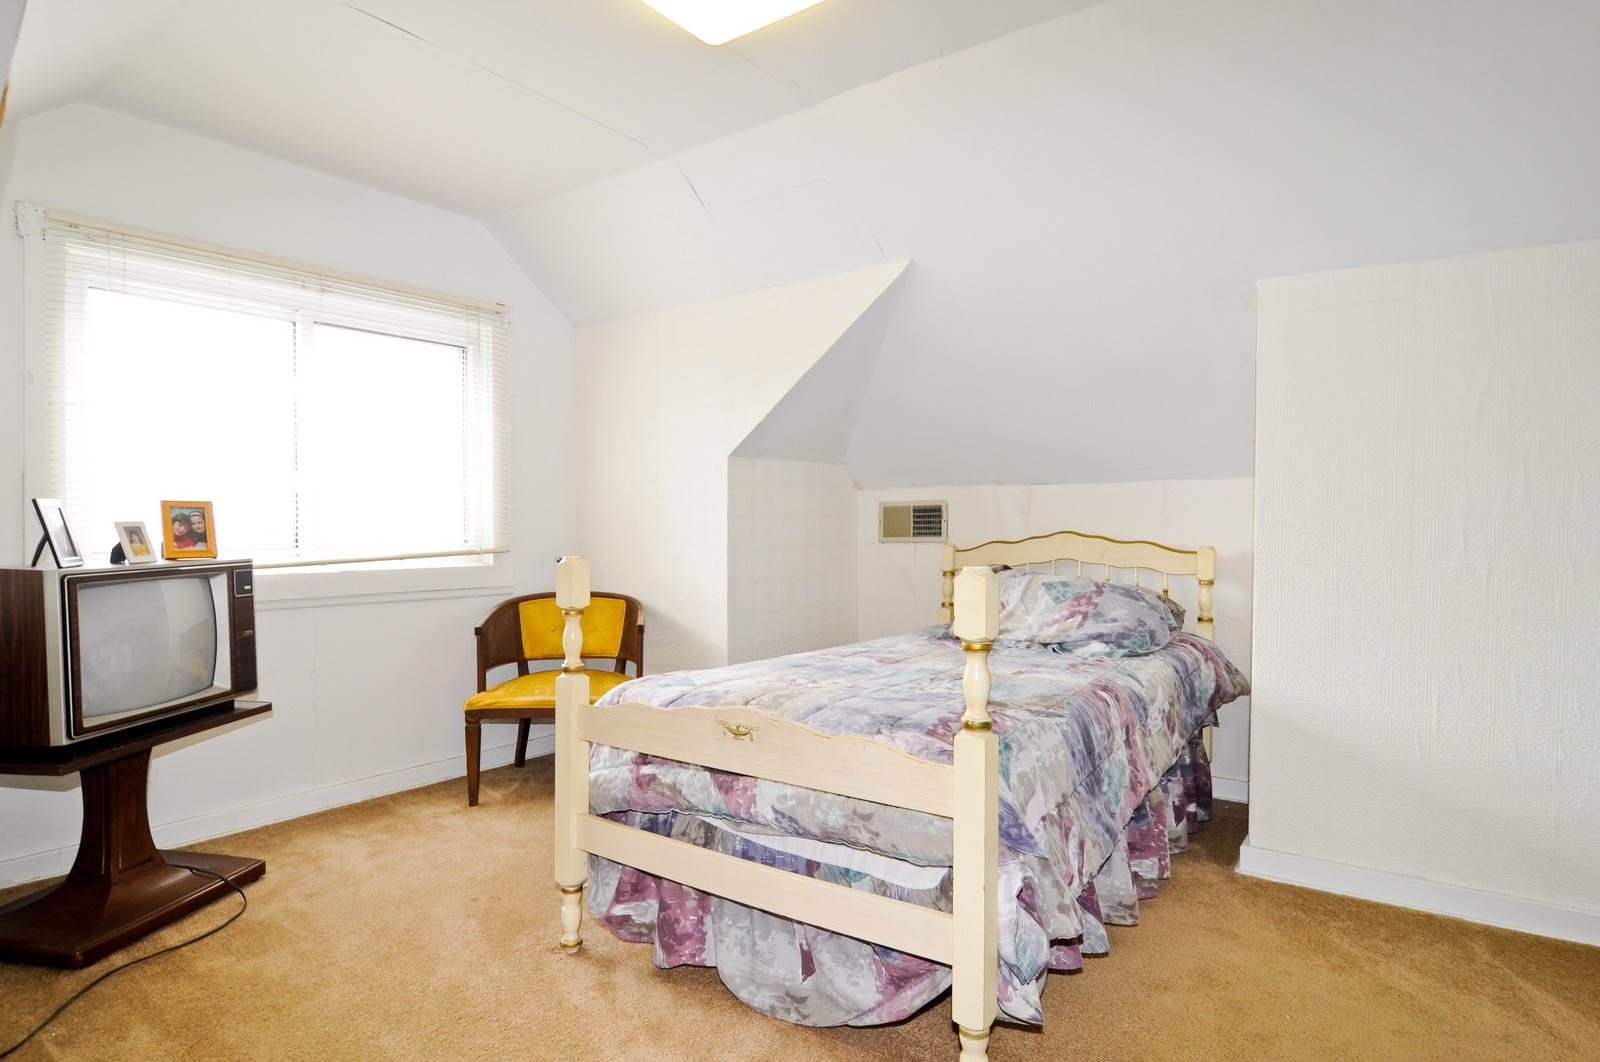 Real Estate Photography - 2930 N. Kildare, Chicago, IL, 60641 - 2nd Bedroom